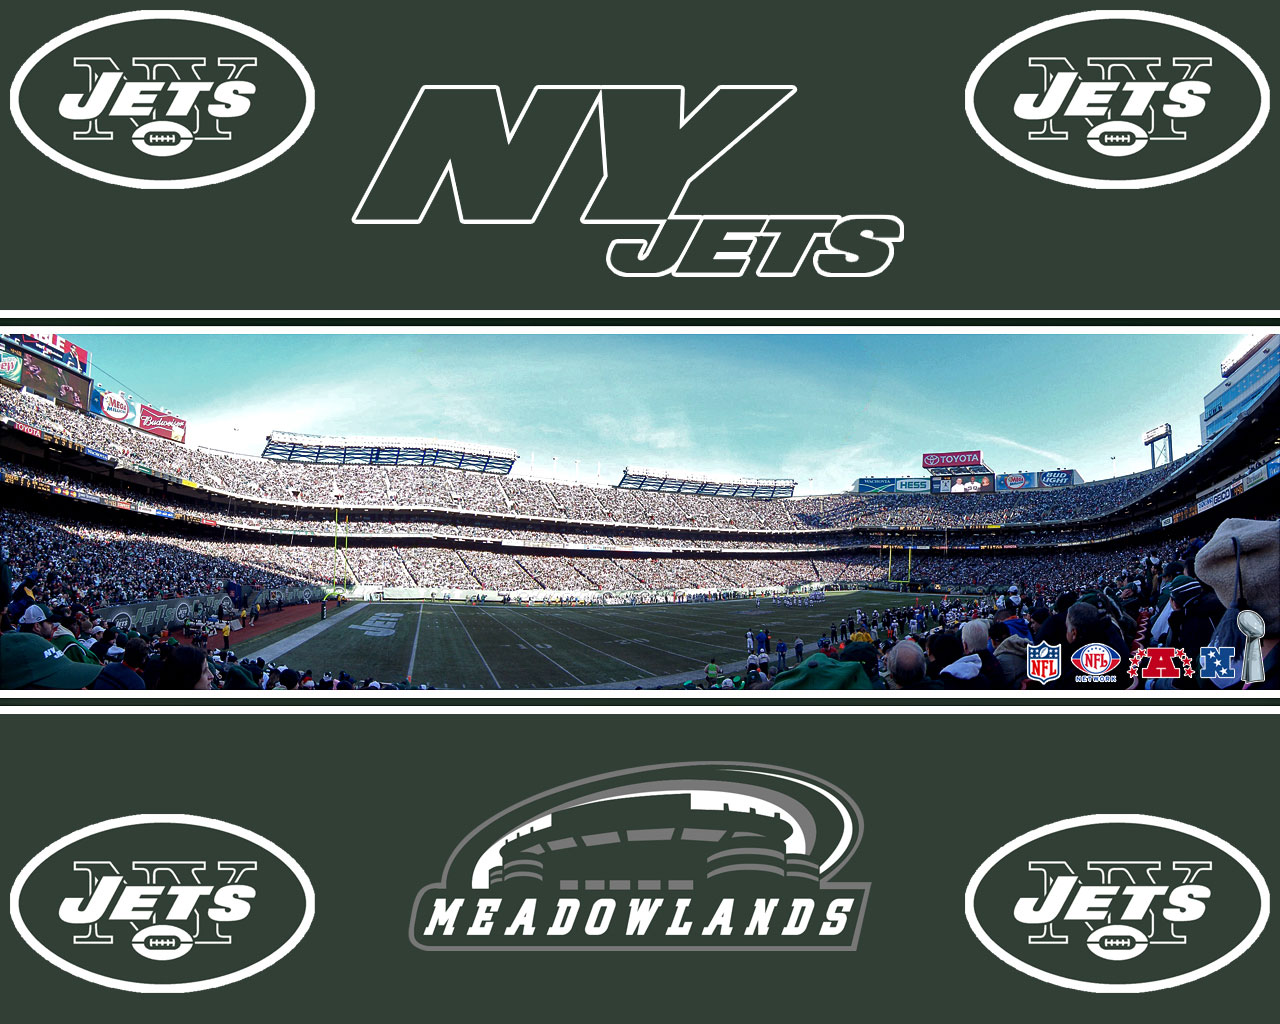 http://4.bp.blogspot.com/-N933D4kGzu4/UA2pJnNVh1I/AAAAAAAABfI/jS46aRXGglY/s1600/new_york_jets_wallpaper_stadium_meadowlands.jpeg